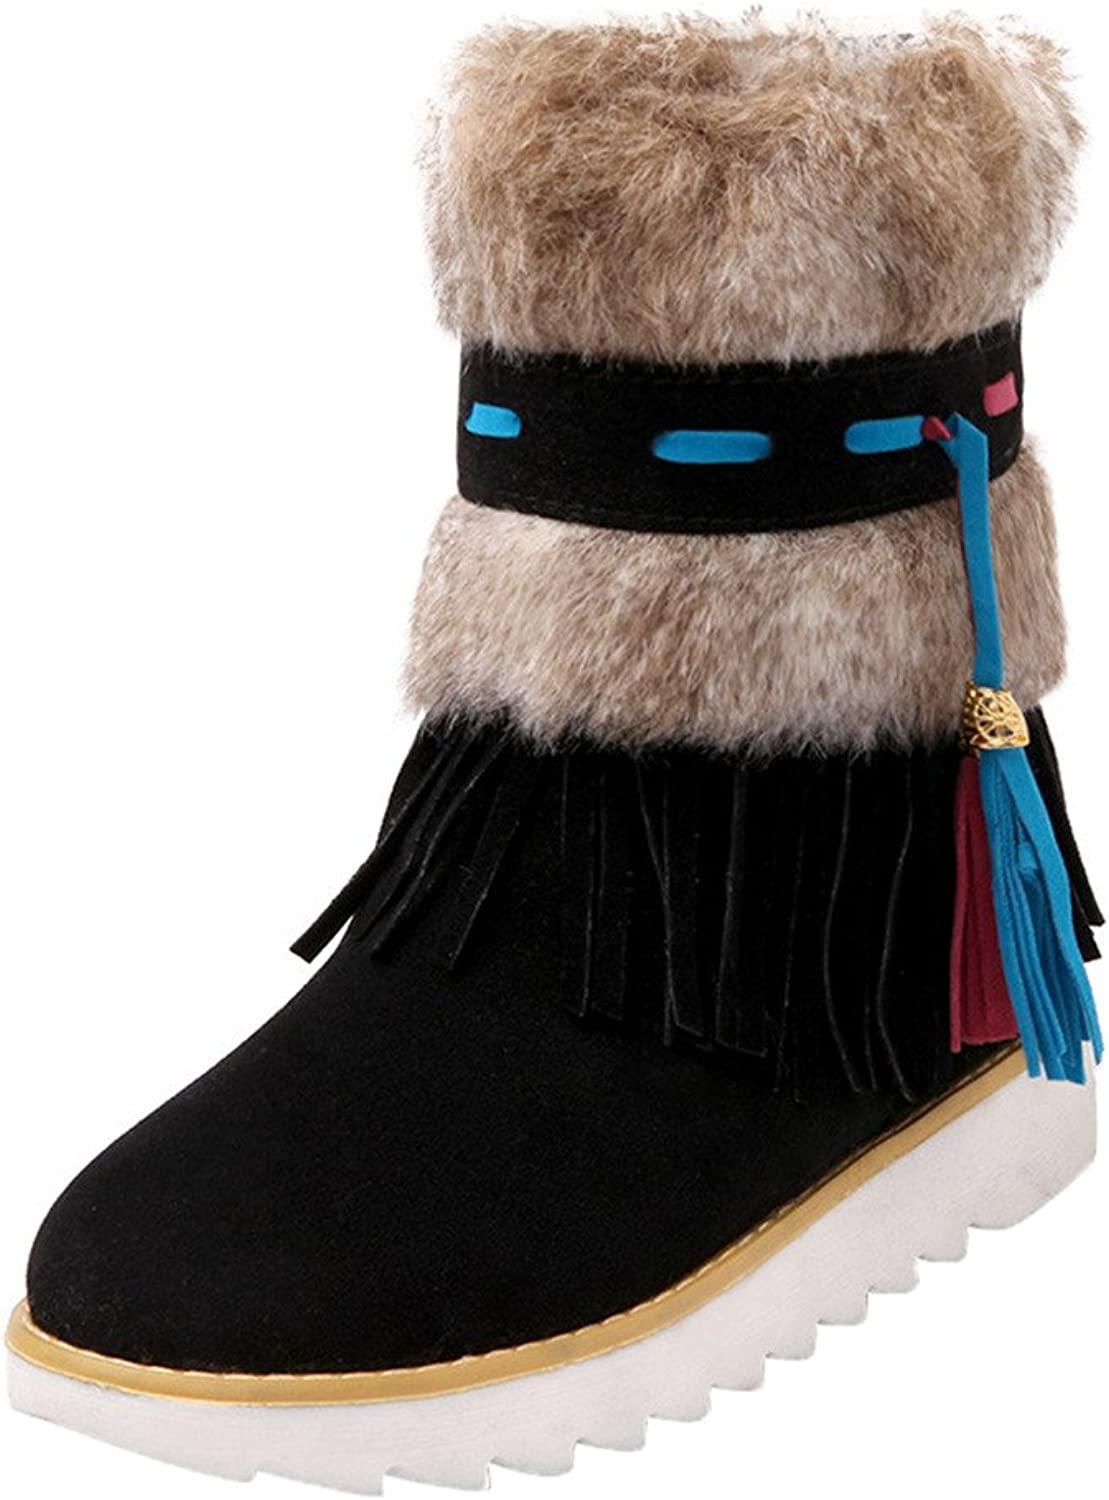 Eclimb Women's Fashion Hidden Platform Mid Calf High Boots